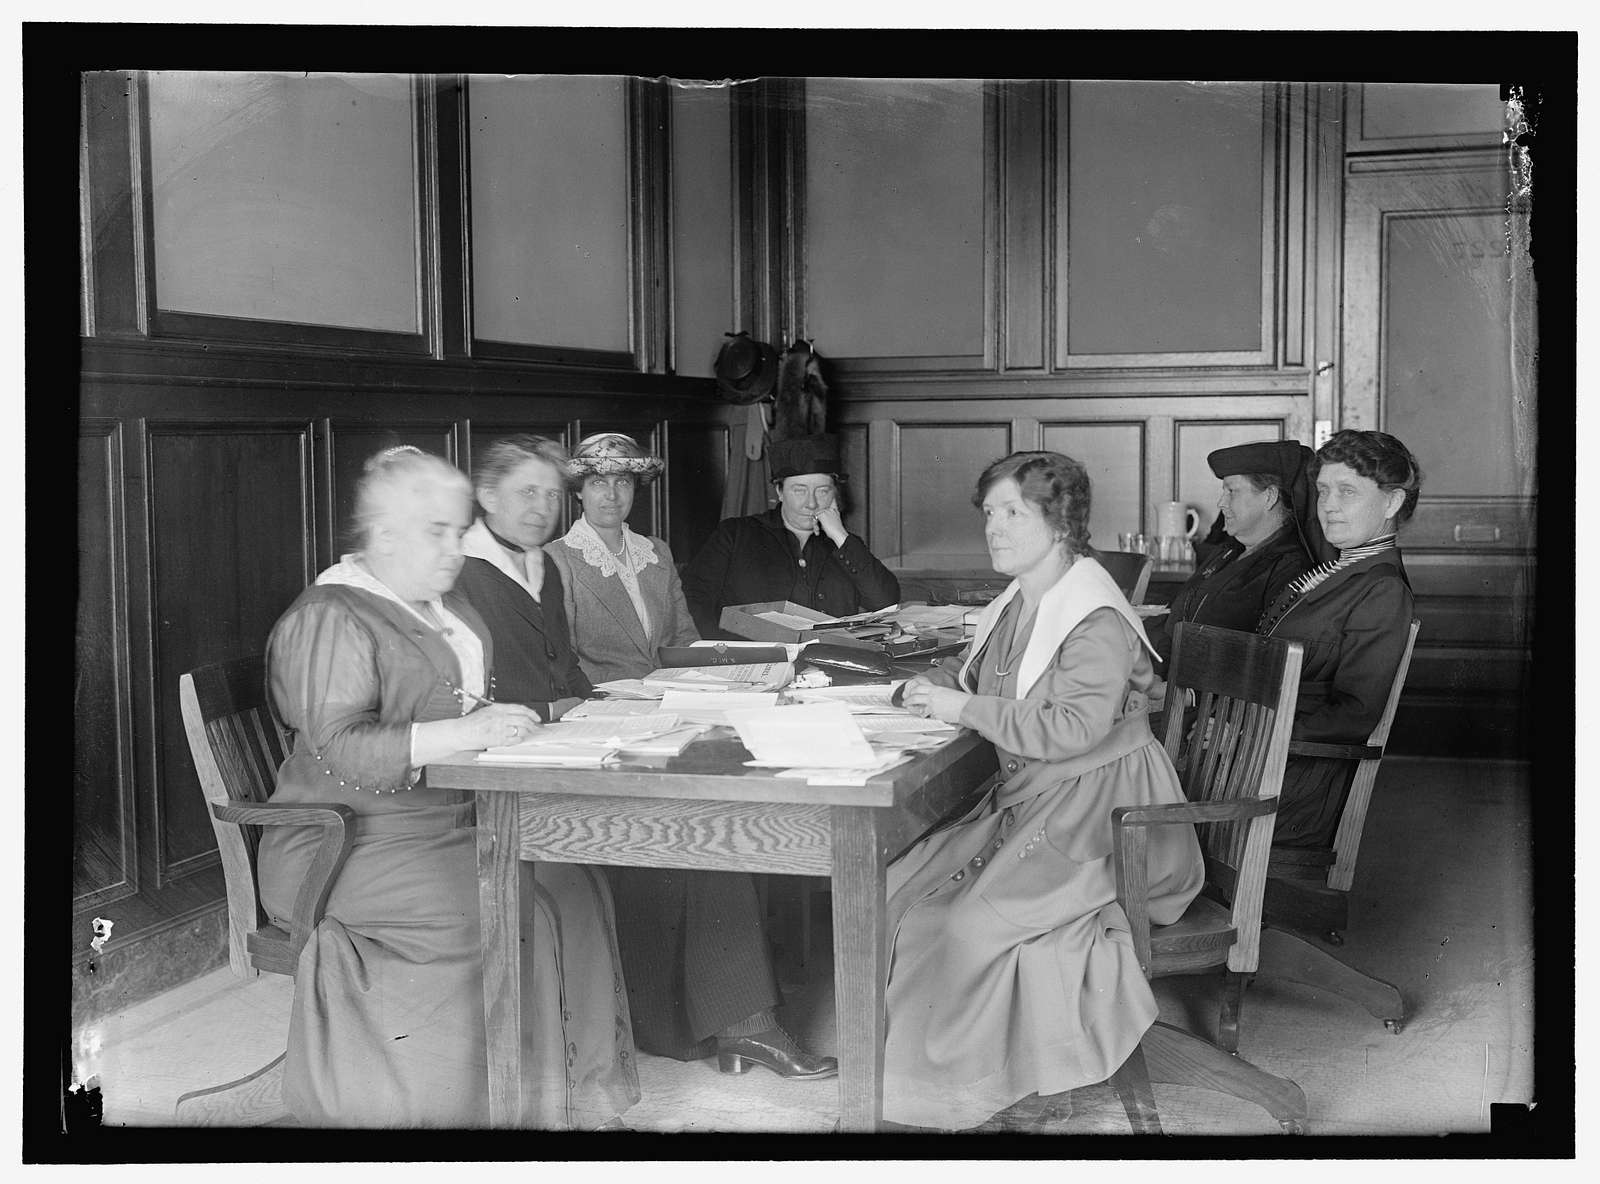 WOMAN'S COMMITTEE. COUNCIL OF NATIONAL DEFENSE. DR. ANNA HOWARD SHAW; IDA M. TARBELL; MRS. STANLEY McCORNICH; MAUD WETMORE; ANTIONETTE FUNK; MRS. JOSIAH COWLES; MRS. JOSEPH LAMAR